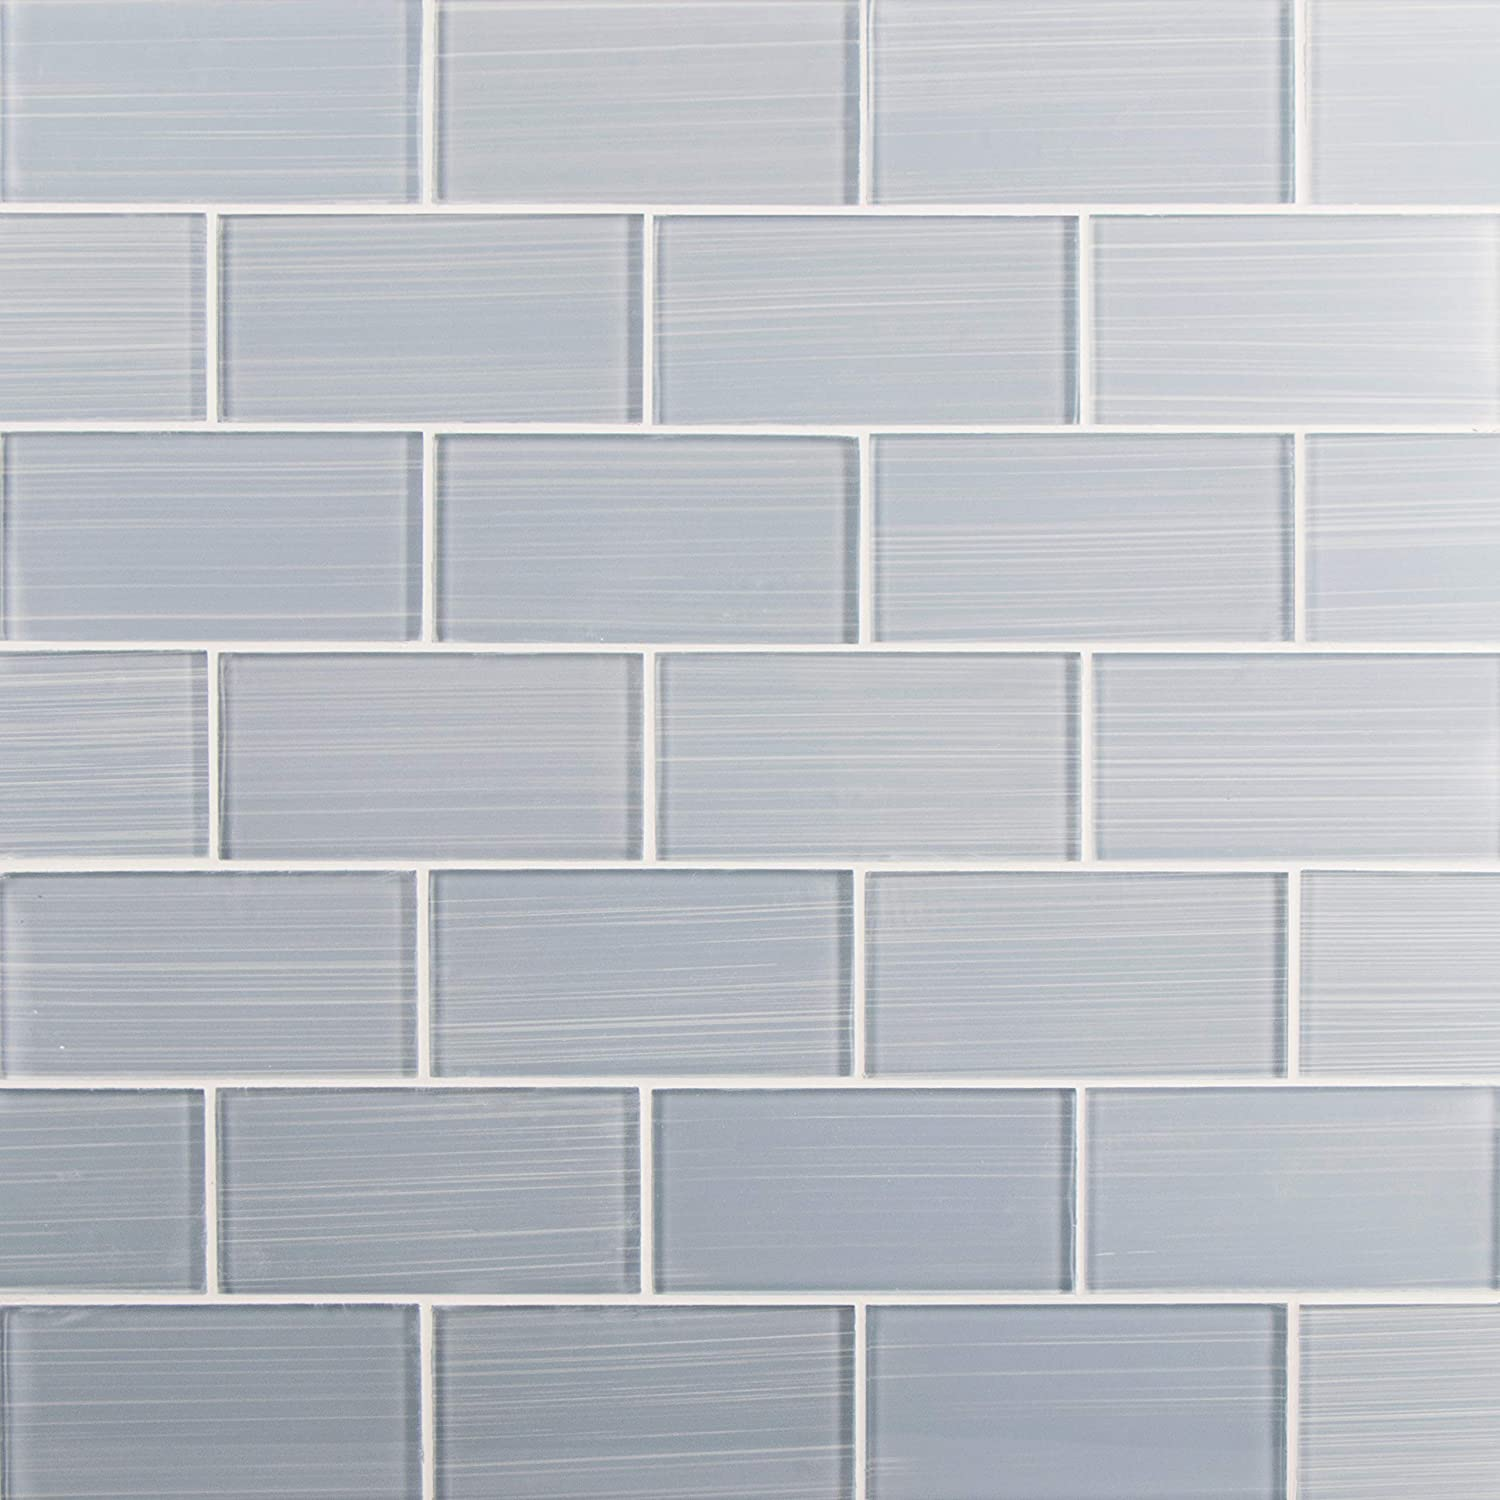 Glass Subway Backsplash Tile Bambu Hand Painted Series for Kitchen and Bathroom by WS Tiles WST-17PH 4 x 12 Individual 5 SqFt, Soft Gray